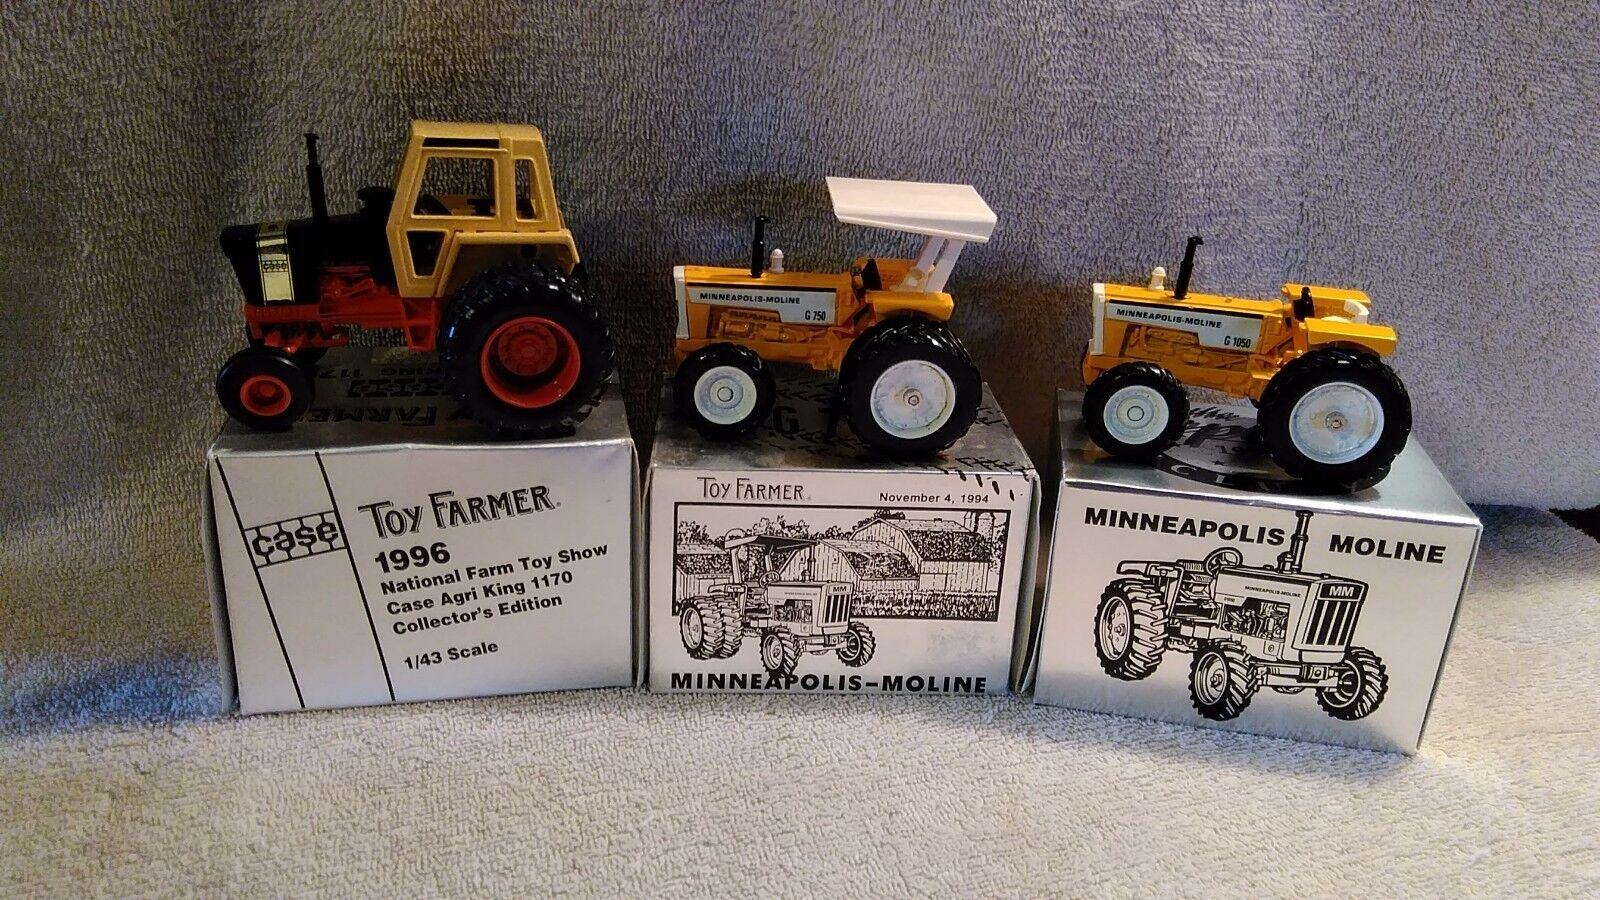 nelle promozioni dello stadio Lot of 3 Ertl 1 1 1 43 Case Agri re 1170, Minneapolis Moline G750 & G1050 Tractors  wholesape economico